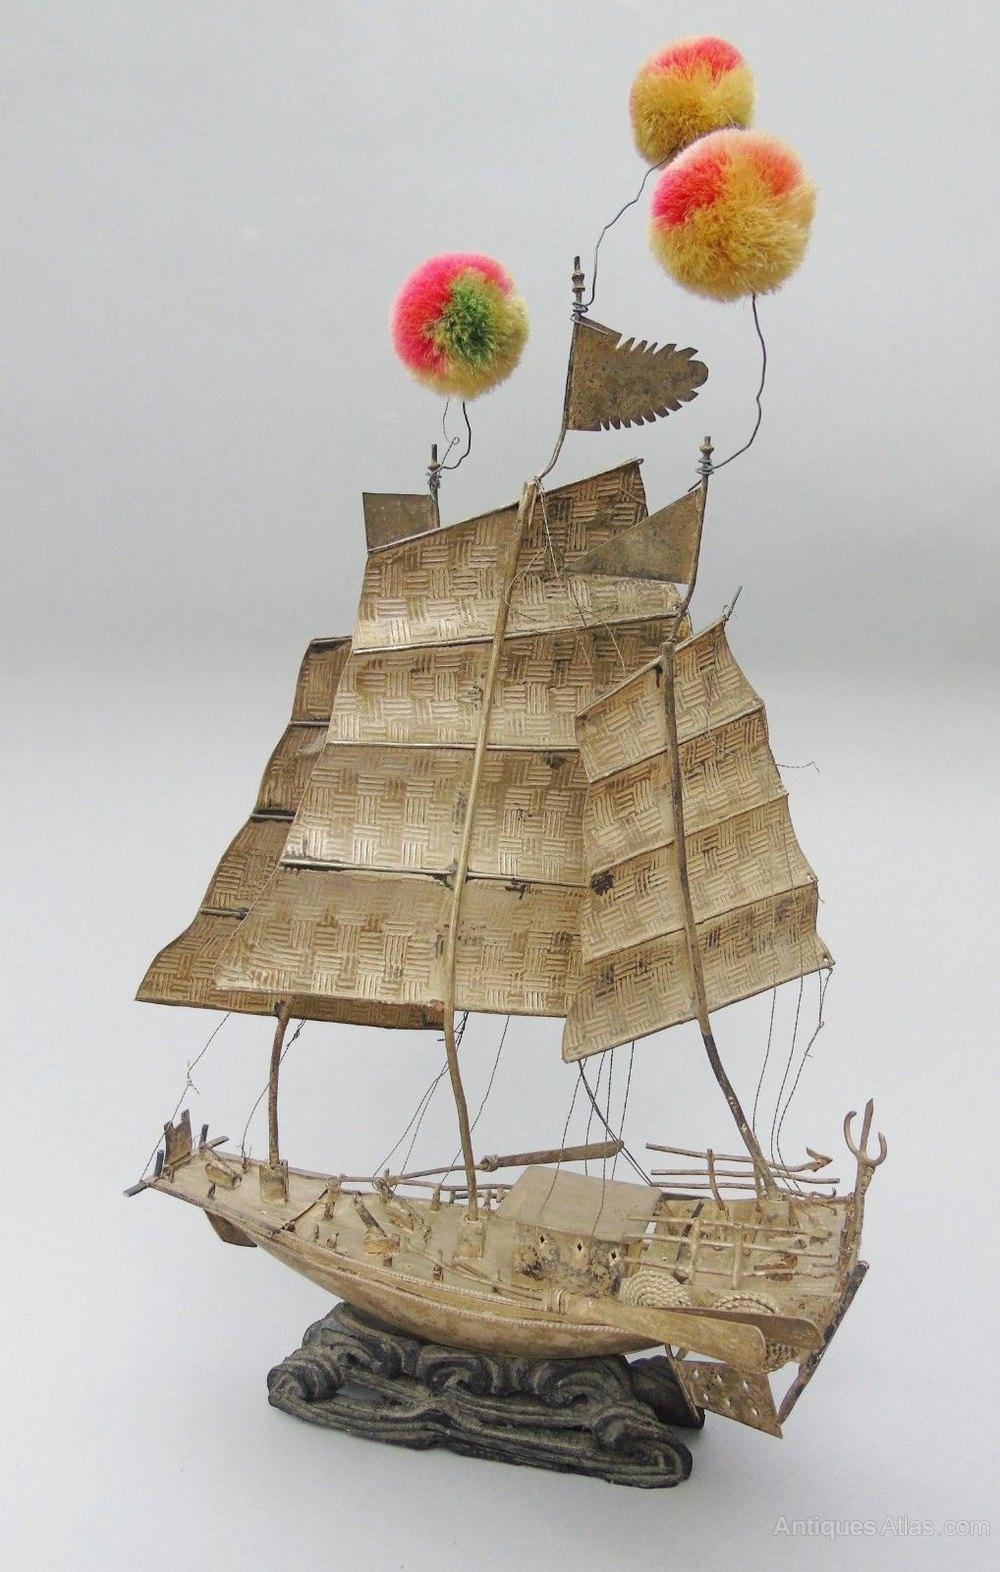 Antique Chinese Sailing Junk